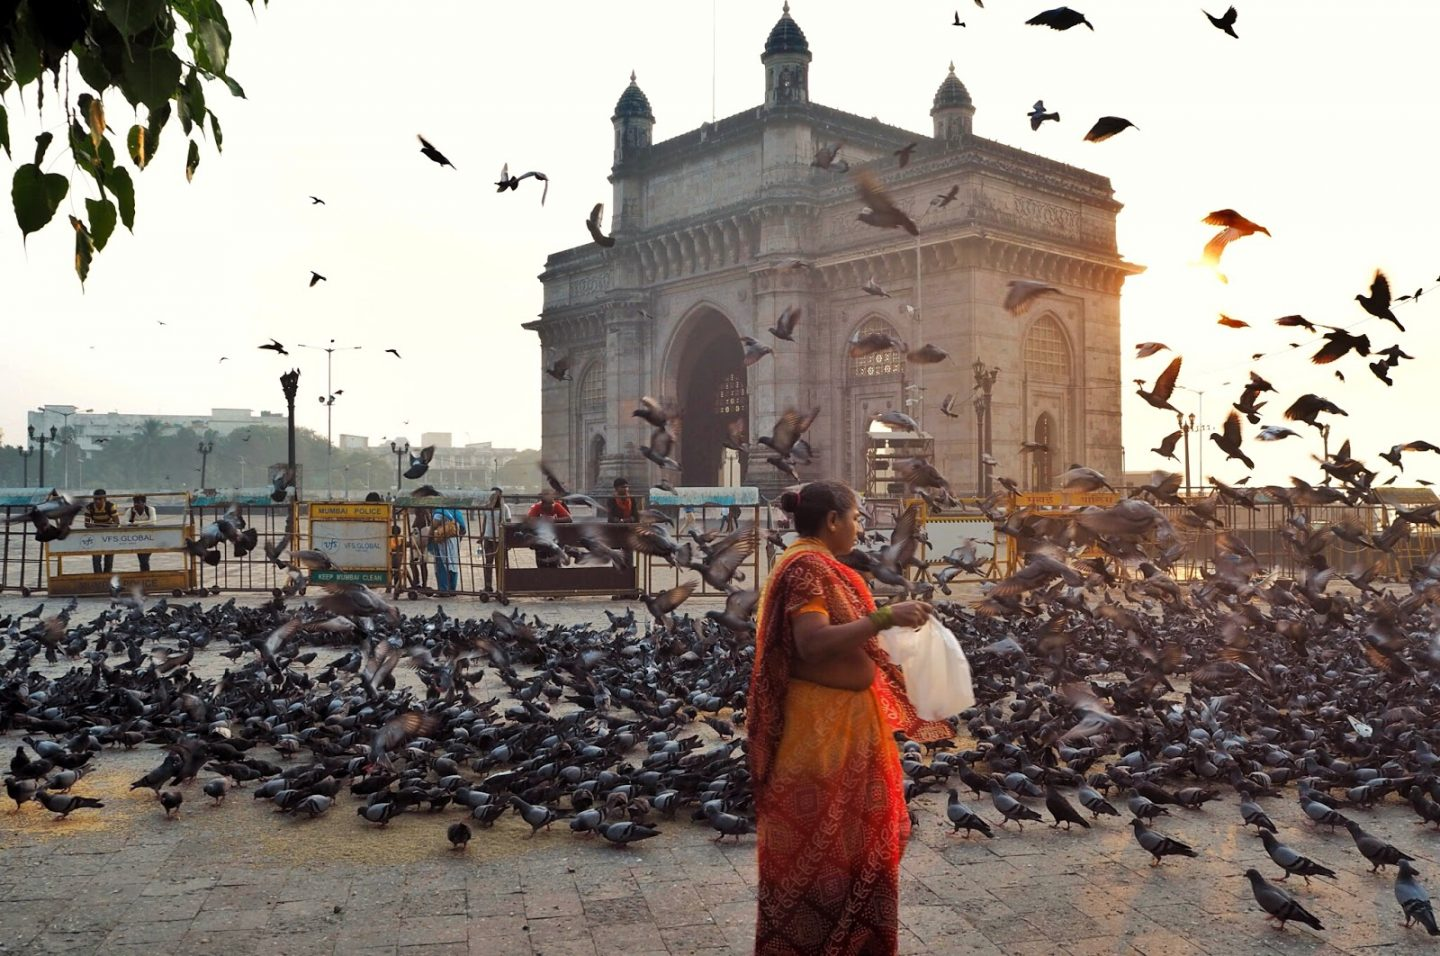 Birds being fed at the gateway of india